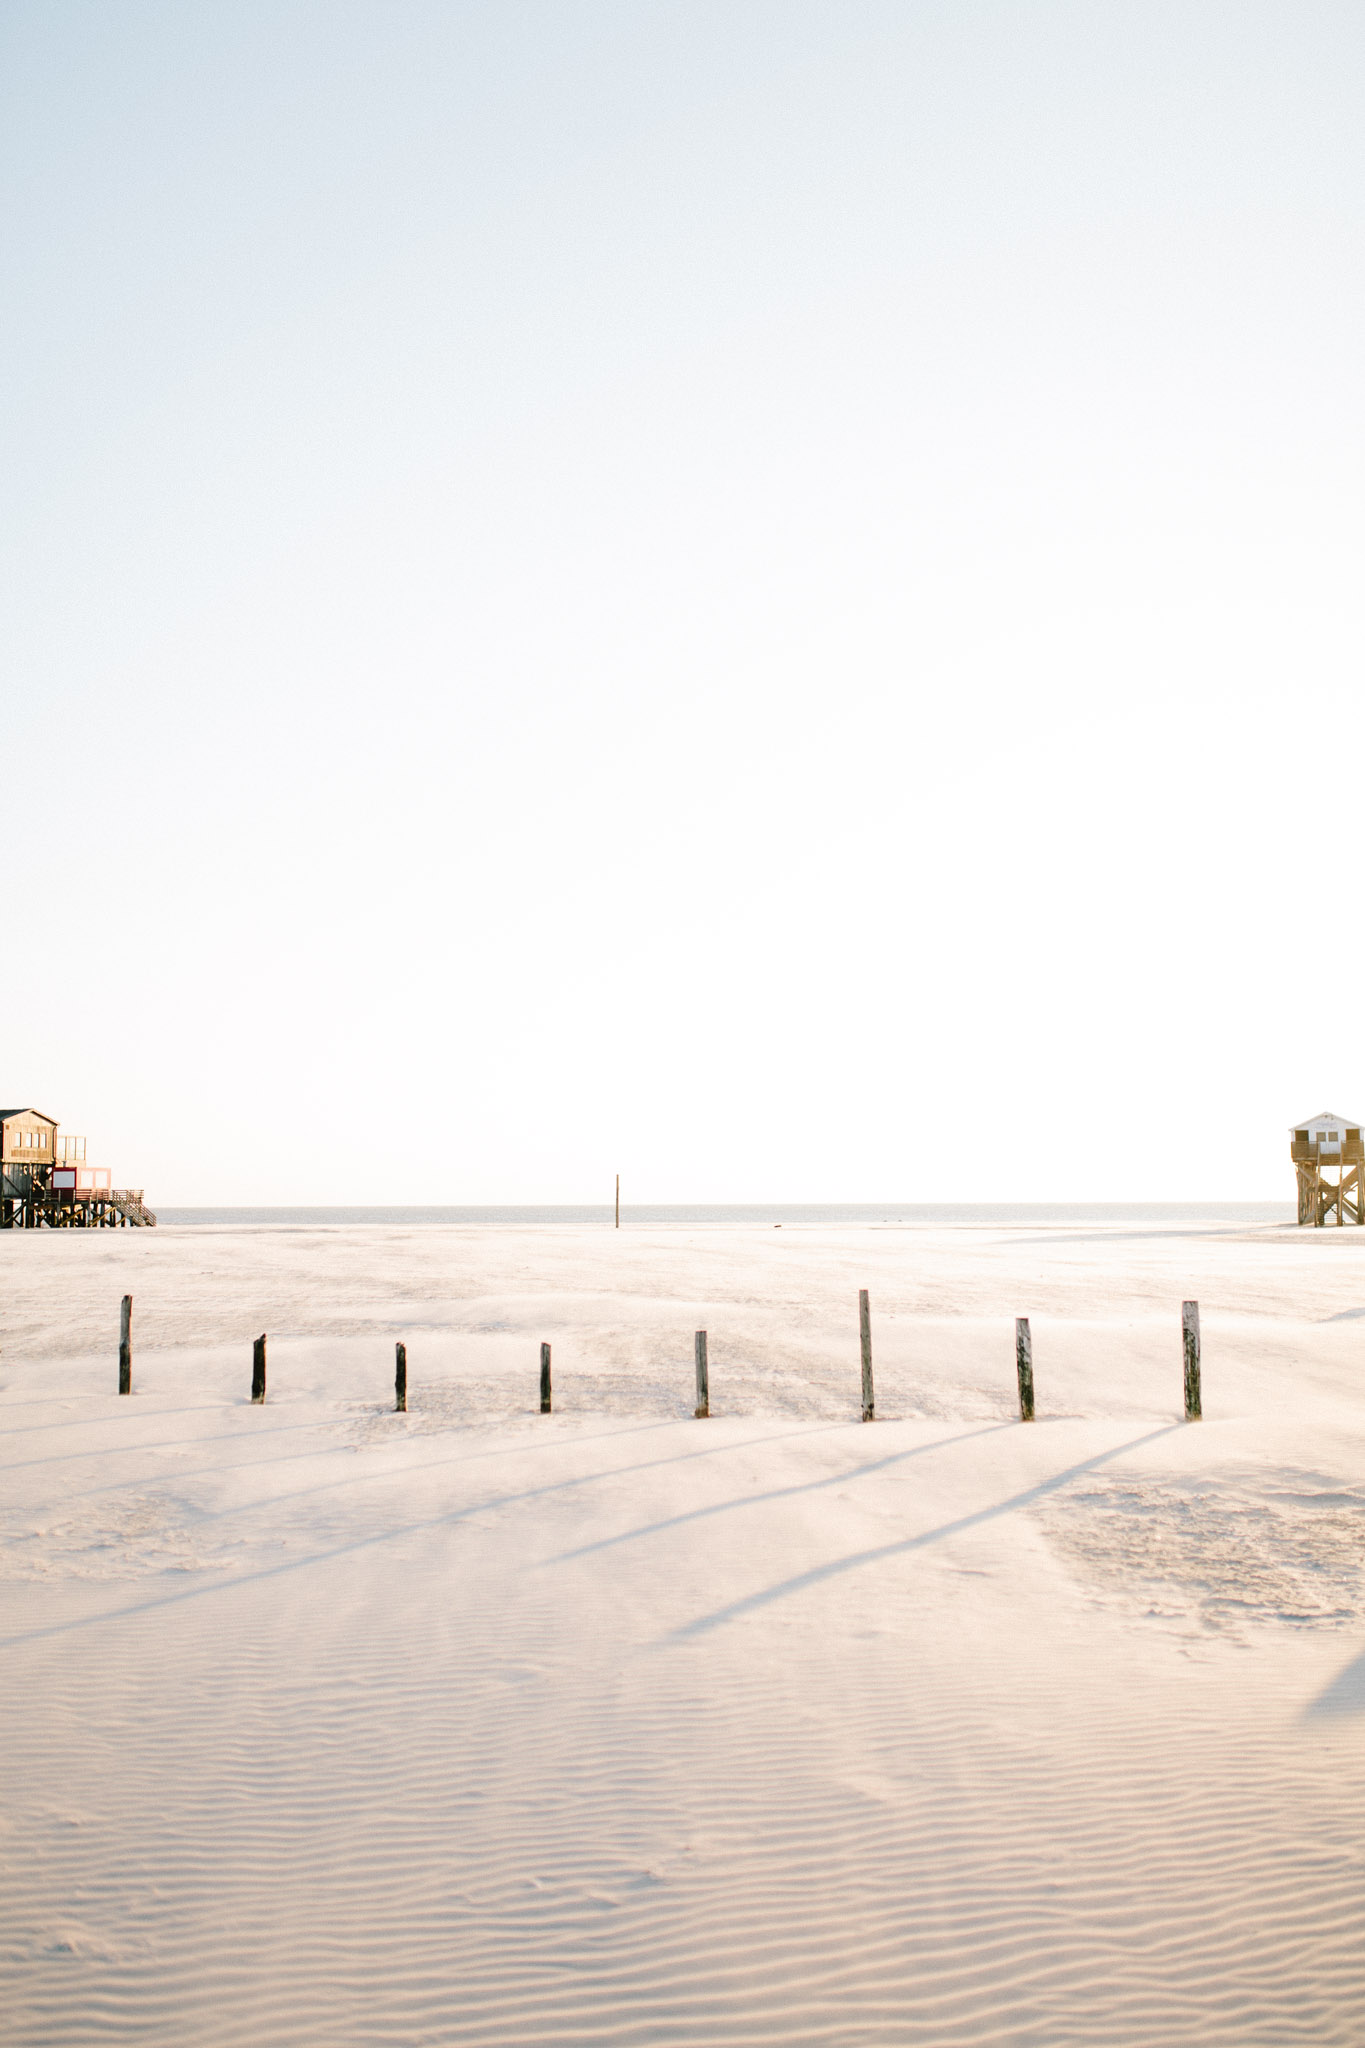 Sankt-Peter-Ording-Engagement-Pia-Anna-Christian-Wedding-Photography-KT-38.jpg